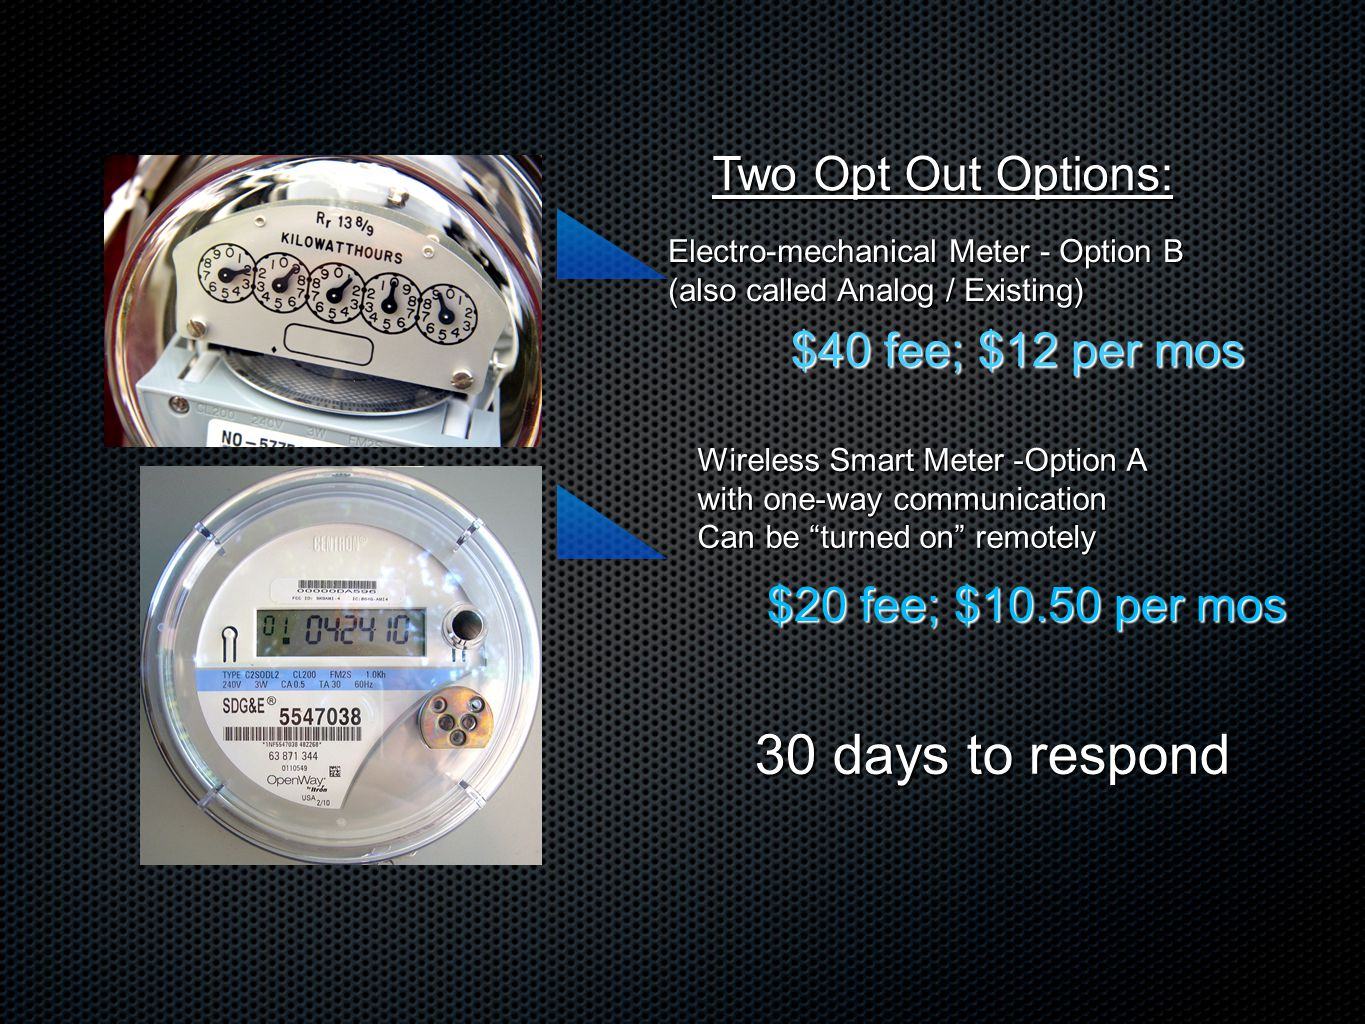 Two Opt Out Options: Wireless Smart Meter -Option A with one-way communication Can be turned on remotely Electro-mechanical Meter - Option B (also called Analog / Existing) $40 fee; $12 per mos $20 fee; $10.50 per mos 30 days to respond